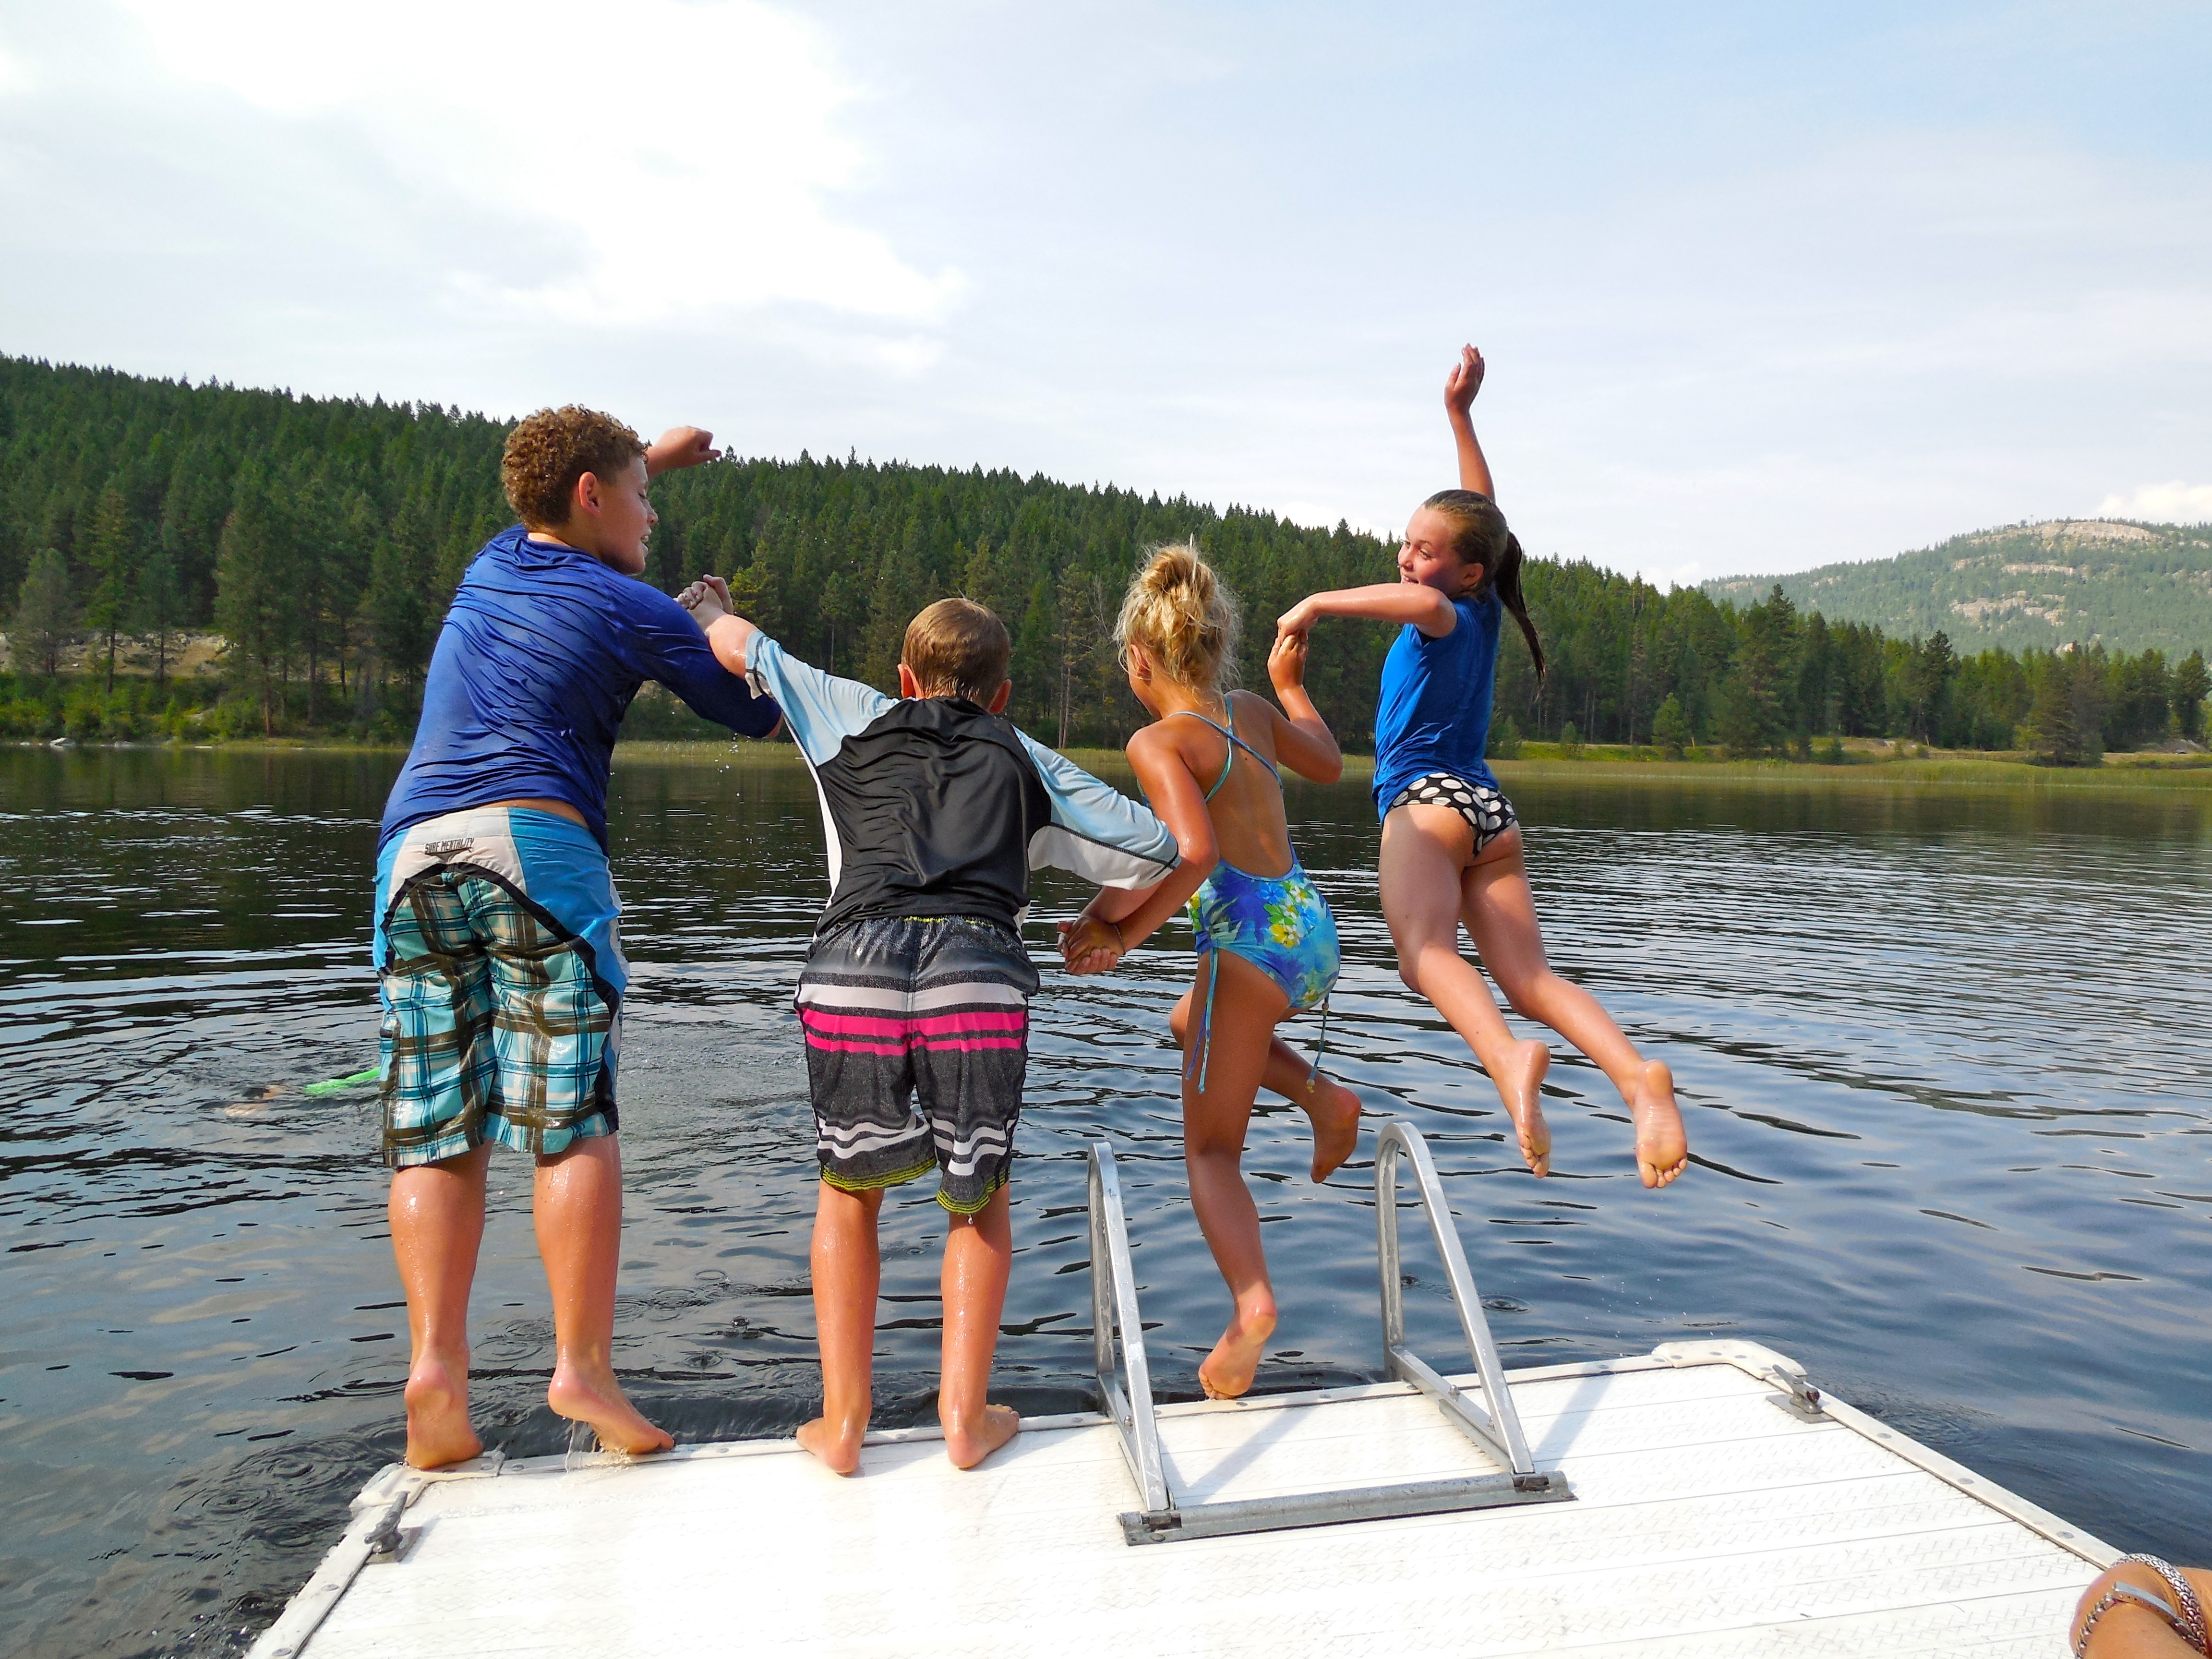 Summer days are defined by swimming in the refreshing waters of Montana